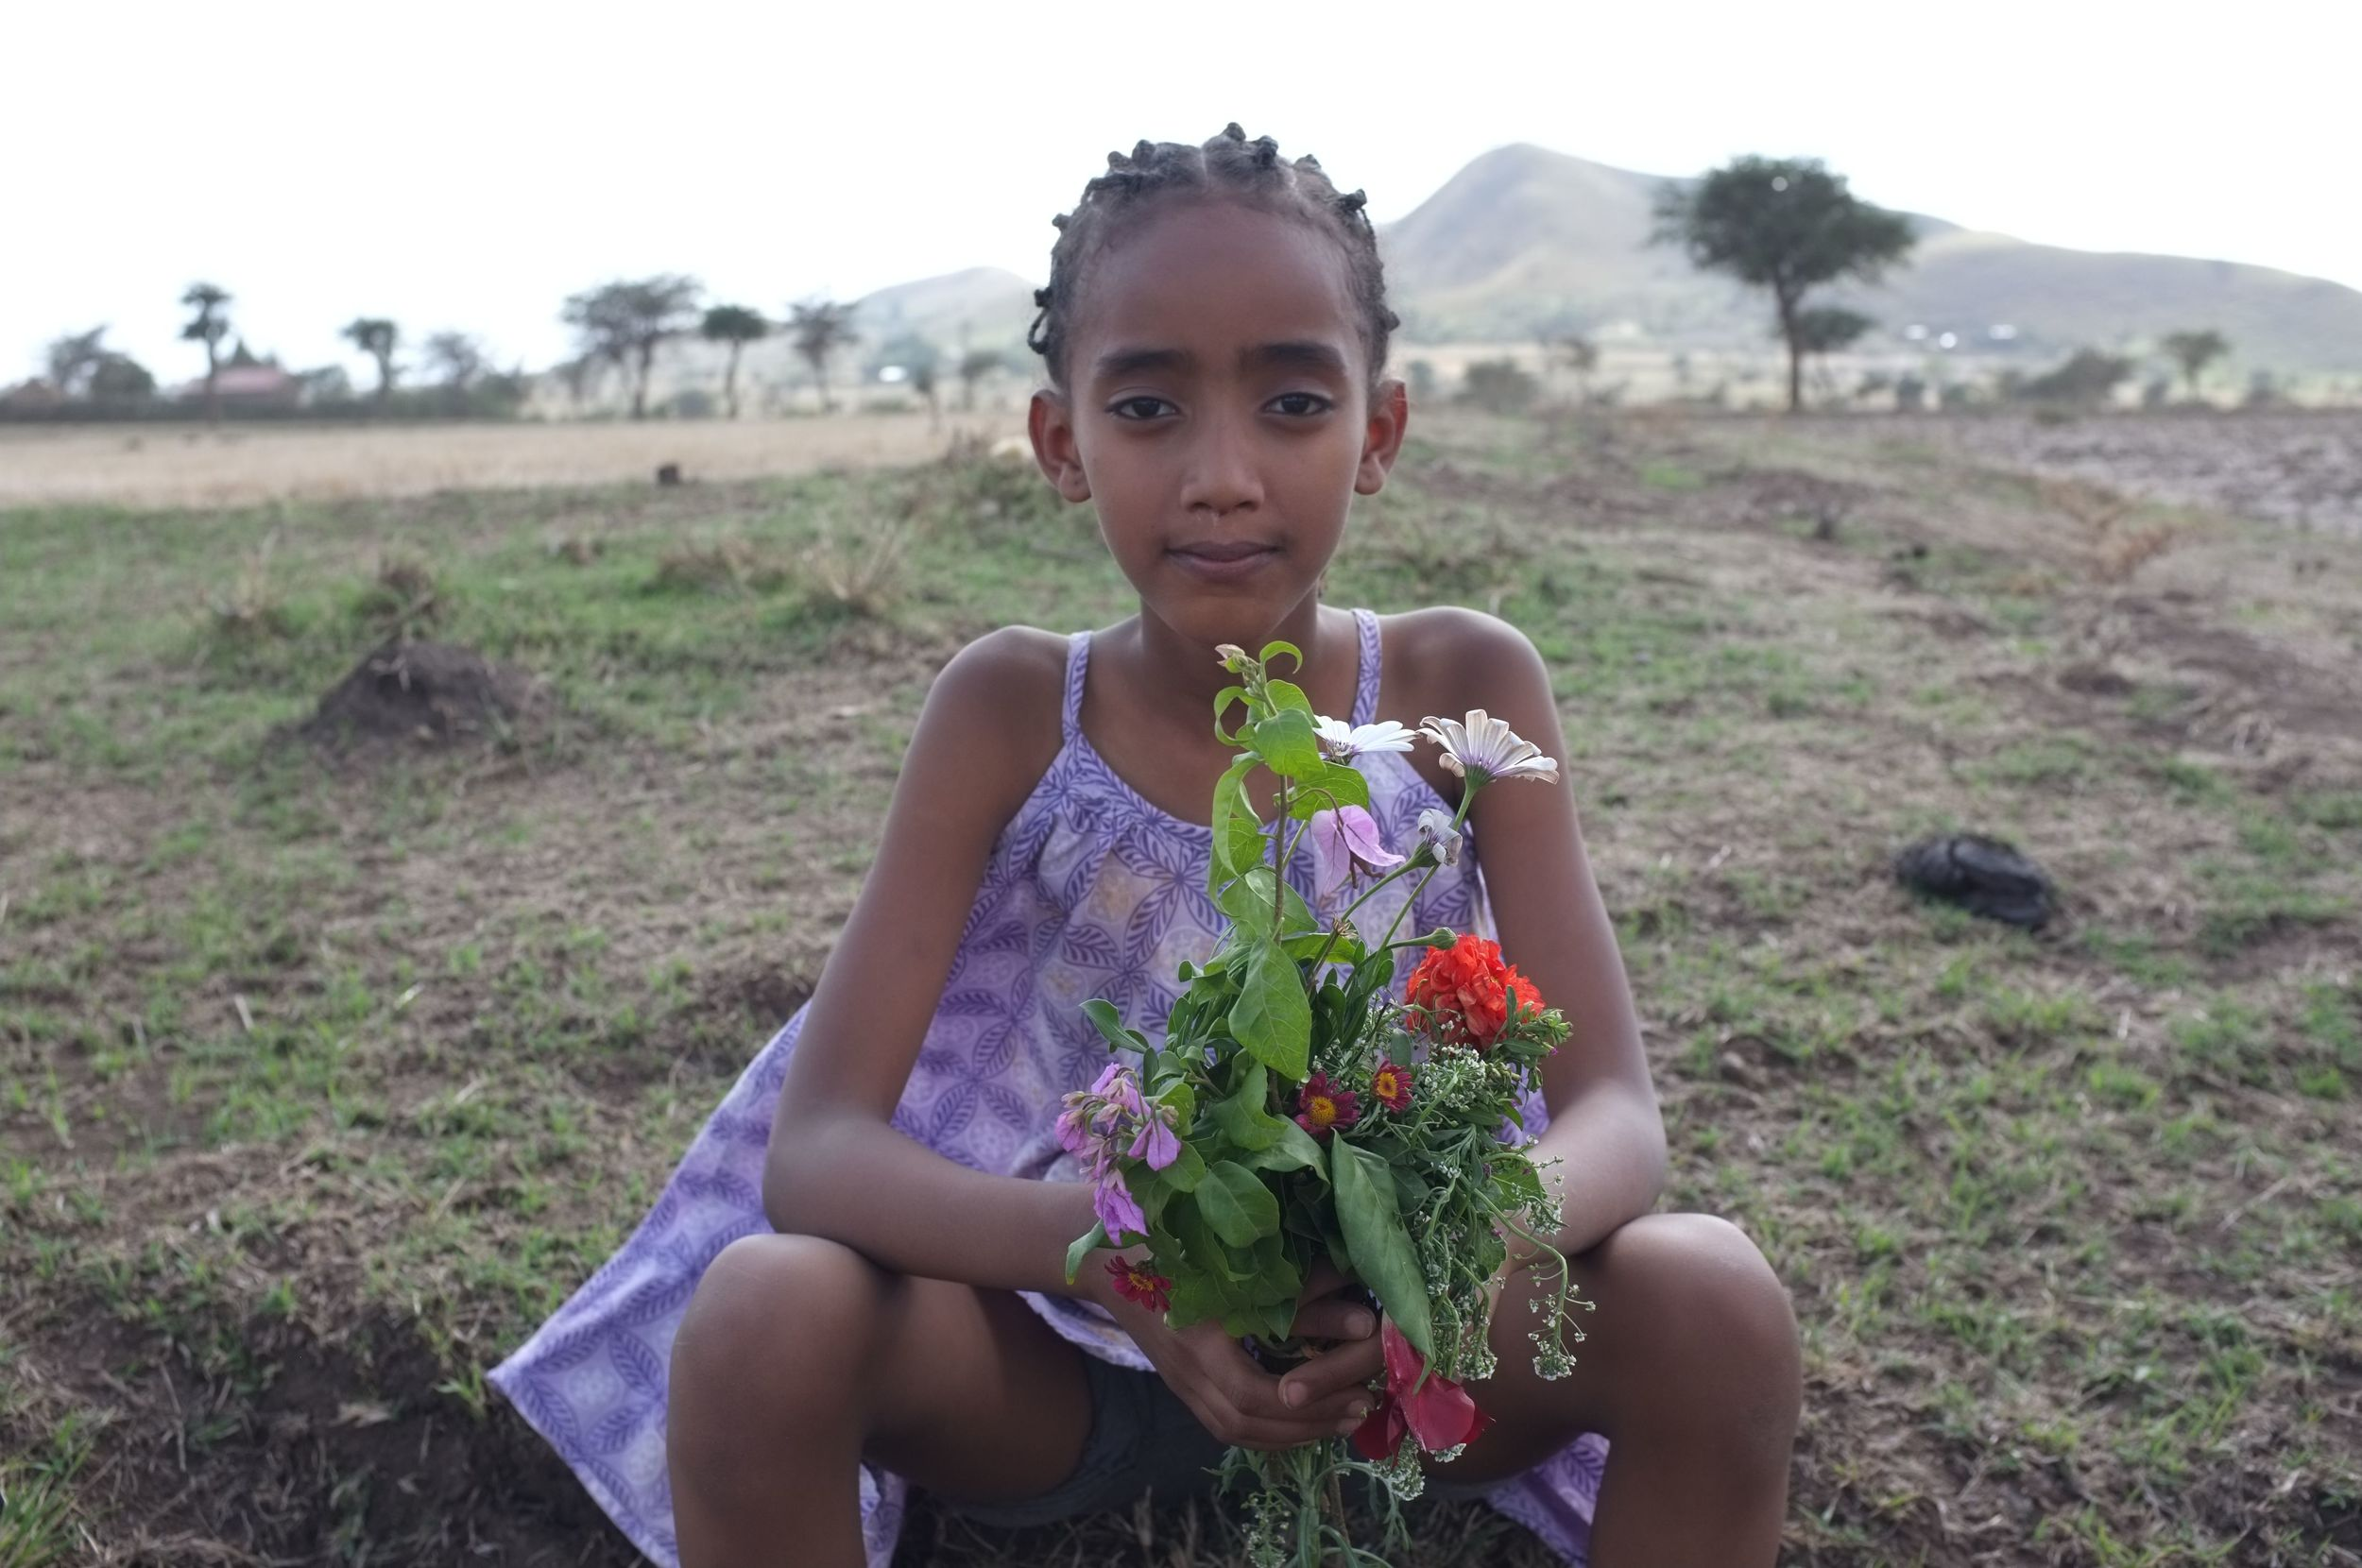 This lovely little girl Hilina had patience and graciousness in excess.